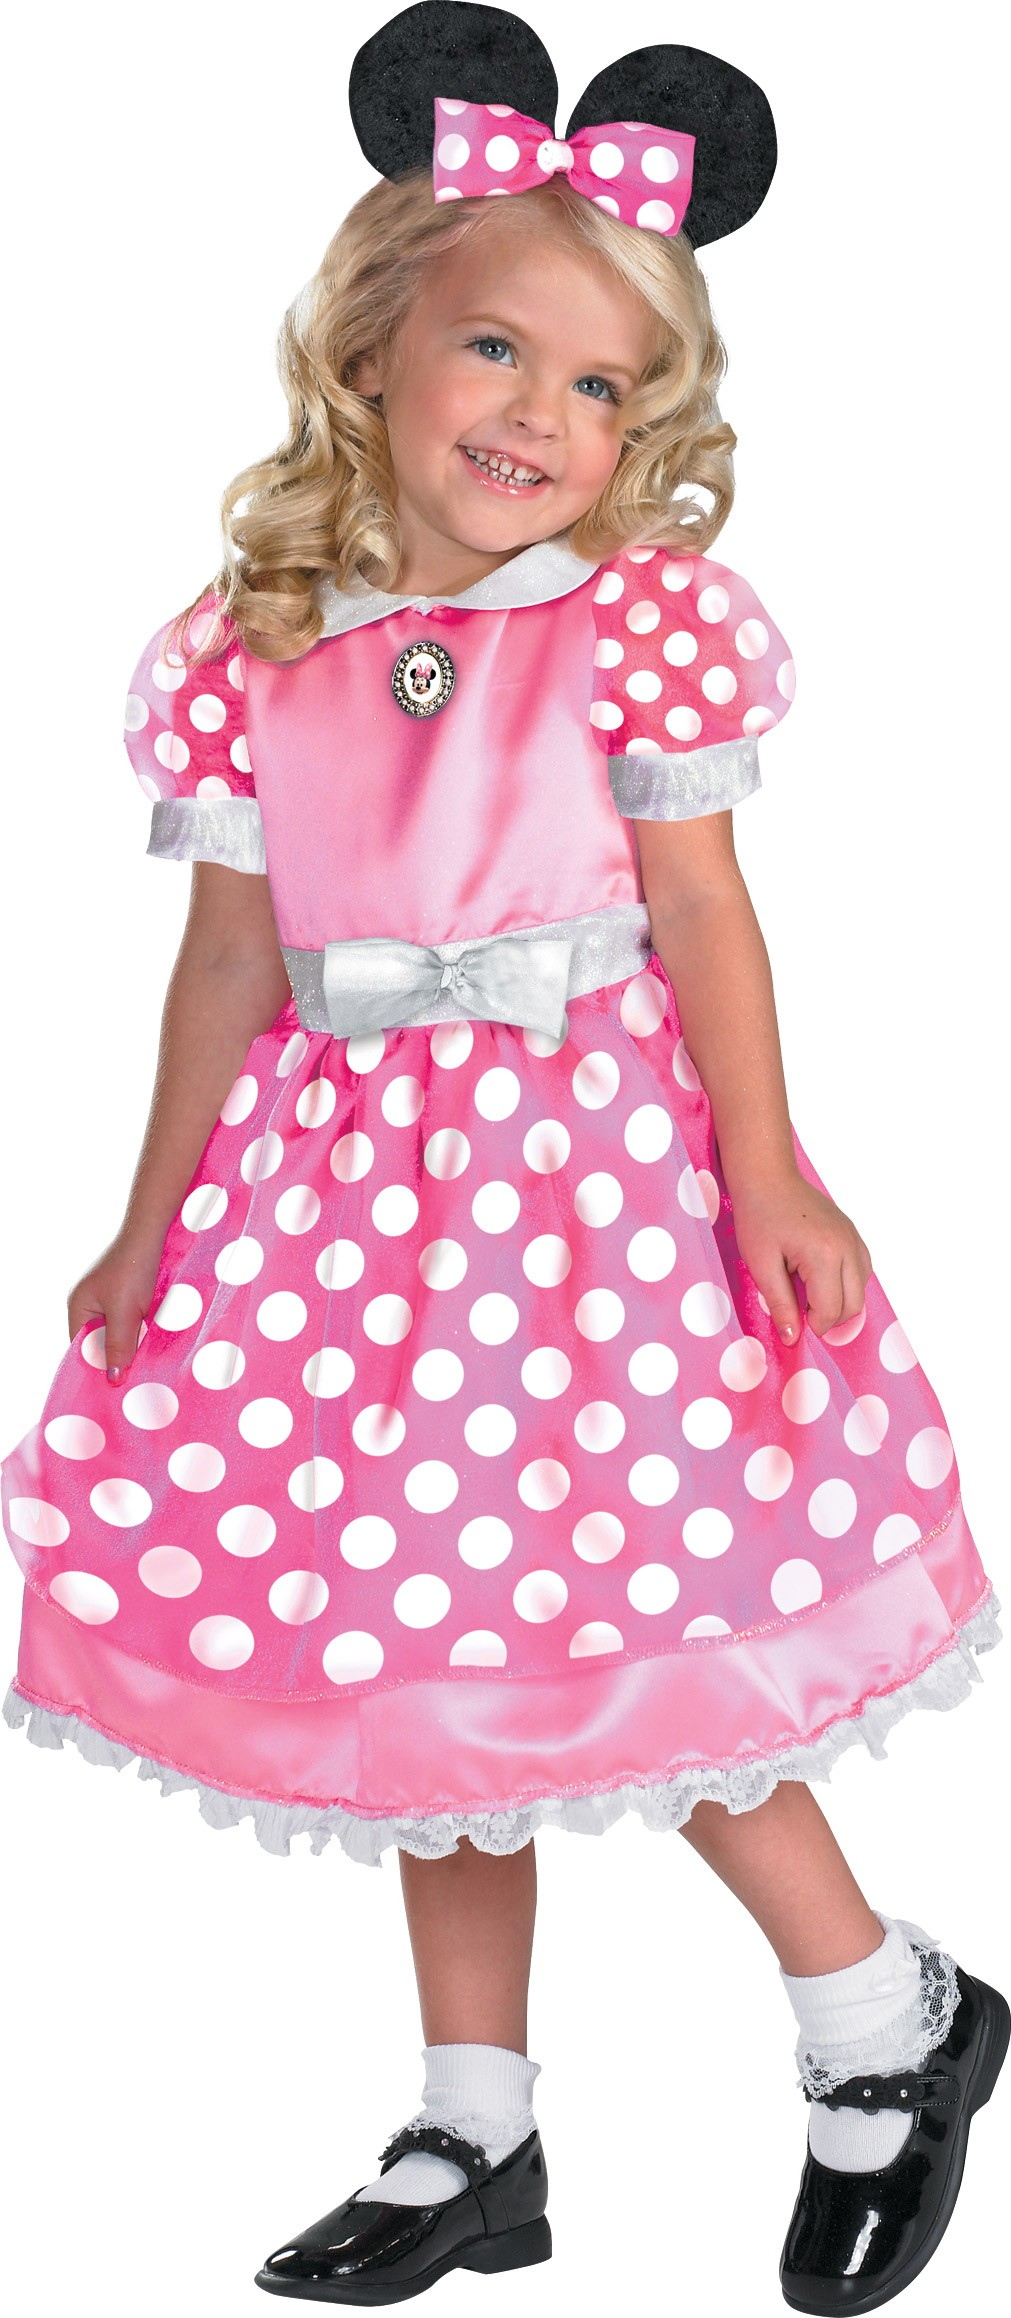 You searched for: minnie mouse baby outfit! Etsy is the home to thousands of handmade, vintage, and one-of-a-kind products and gifts related to your search. No matter what you're looking for or where you are in the world, our global marketplace of sellers can help you .